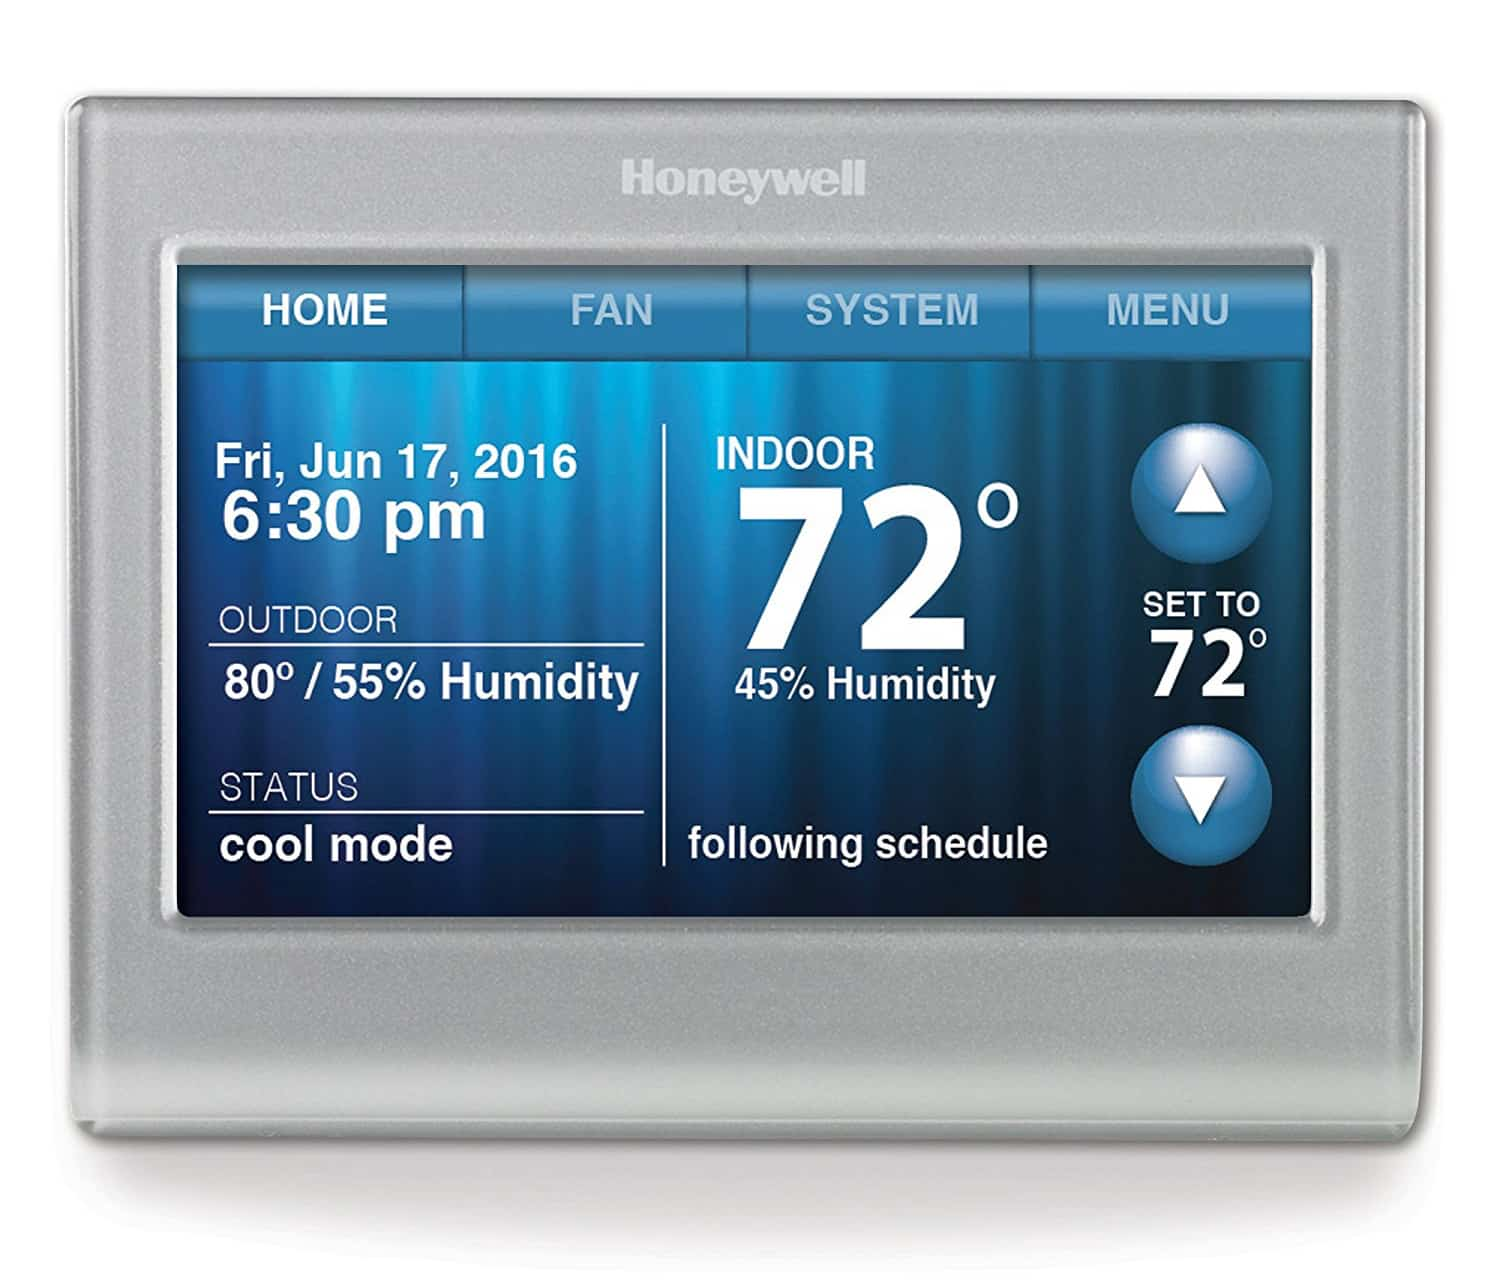 Front look at the Honeywell RTH9580WF Thermostat.